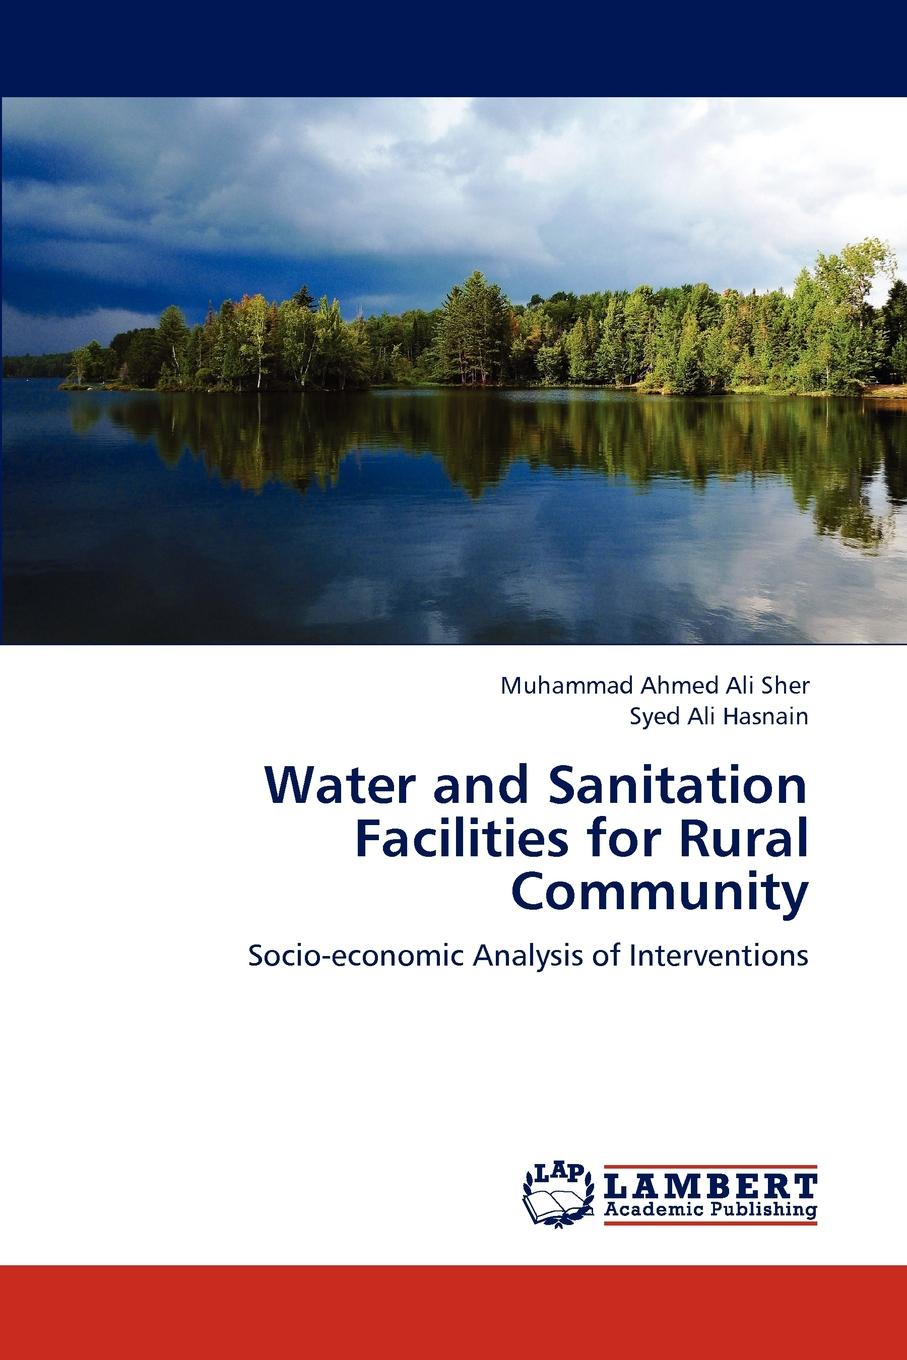 Sher Muhammad Ahmed Ali, Hasnain Syed Ali Water and Sanitation Facilities for Rural Community impact of interventions on brackish water ecosystem and livelihoods